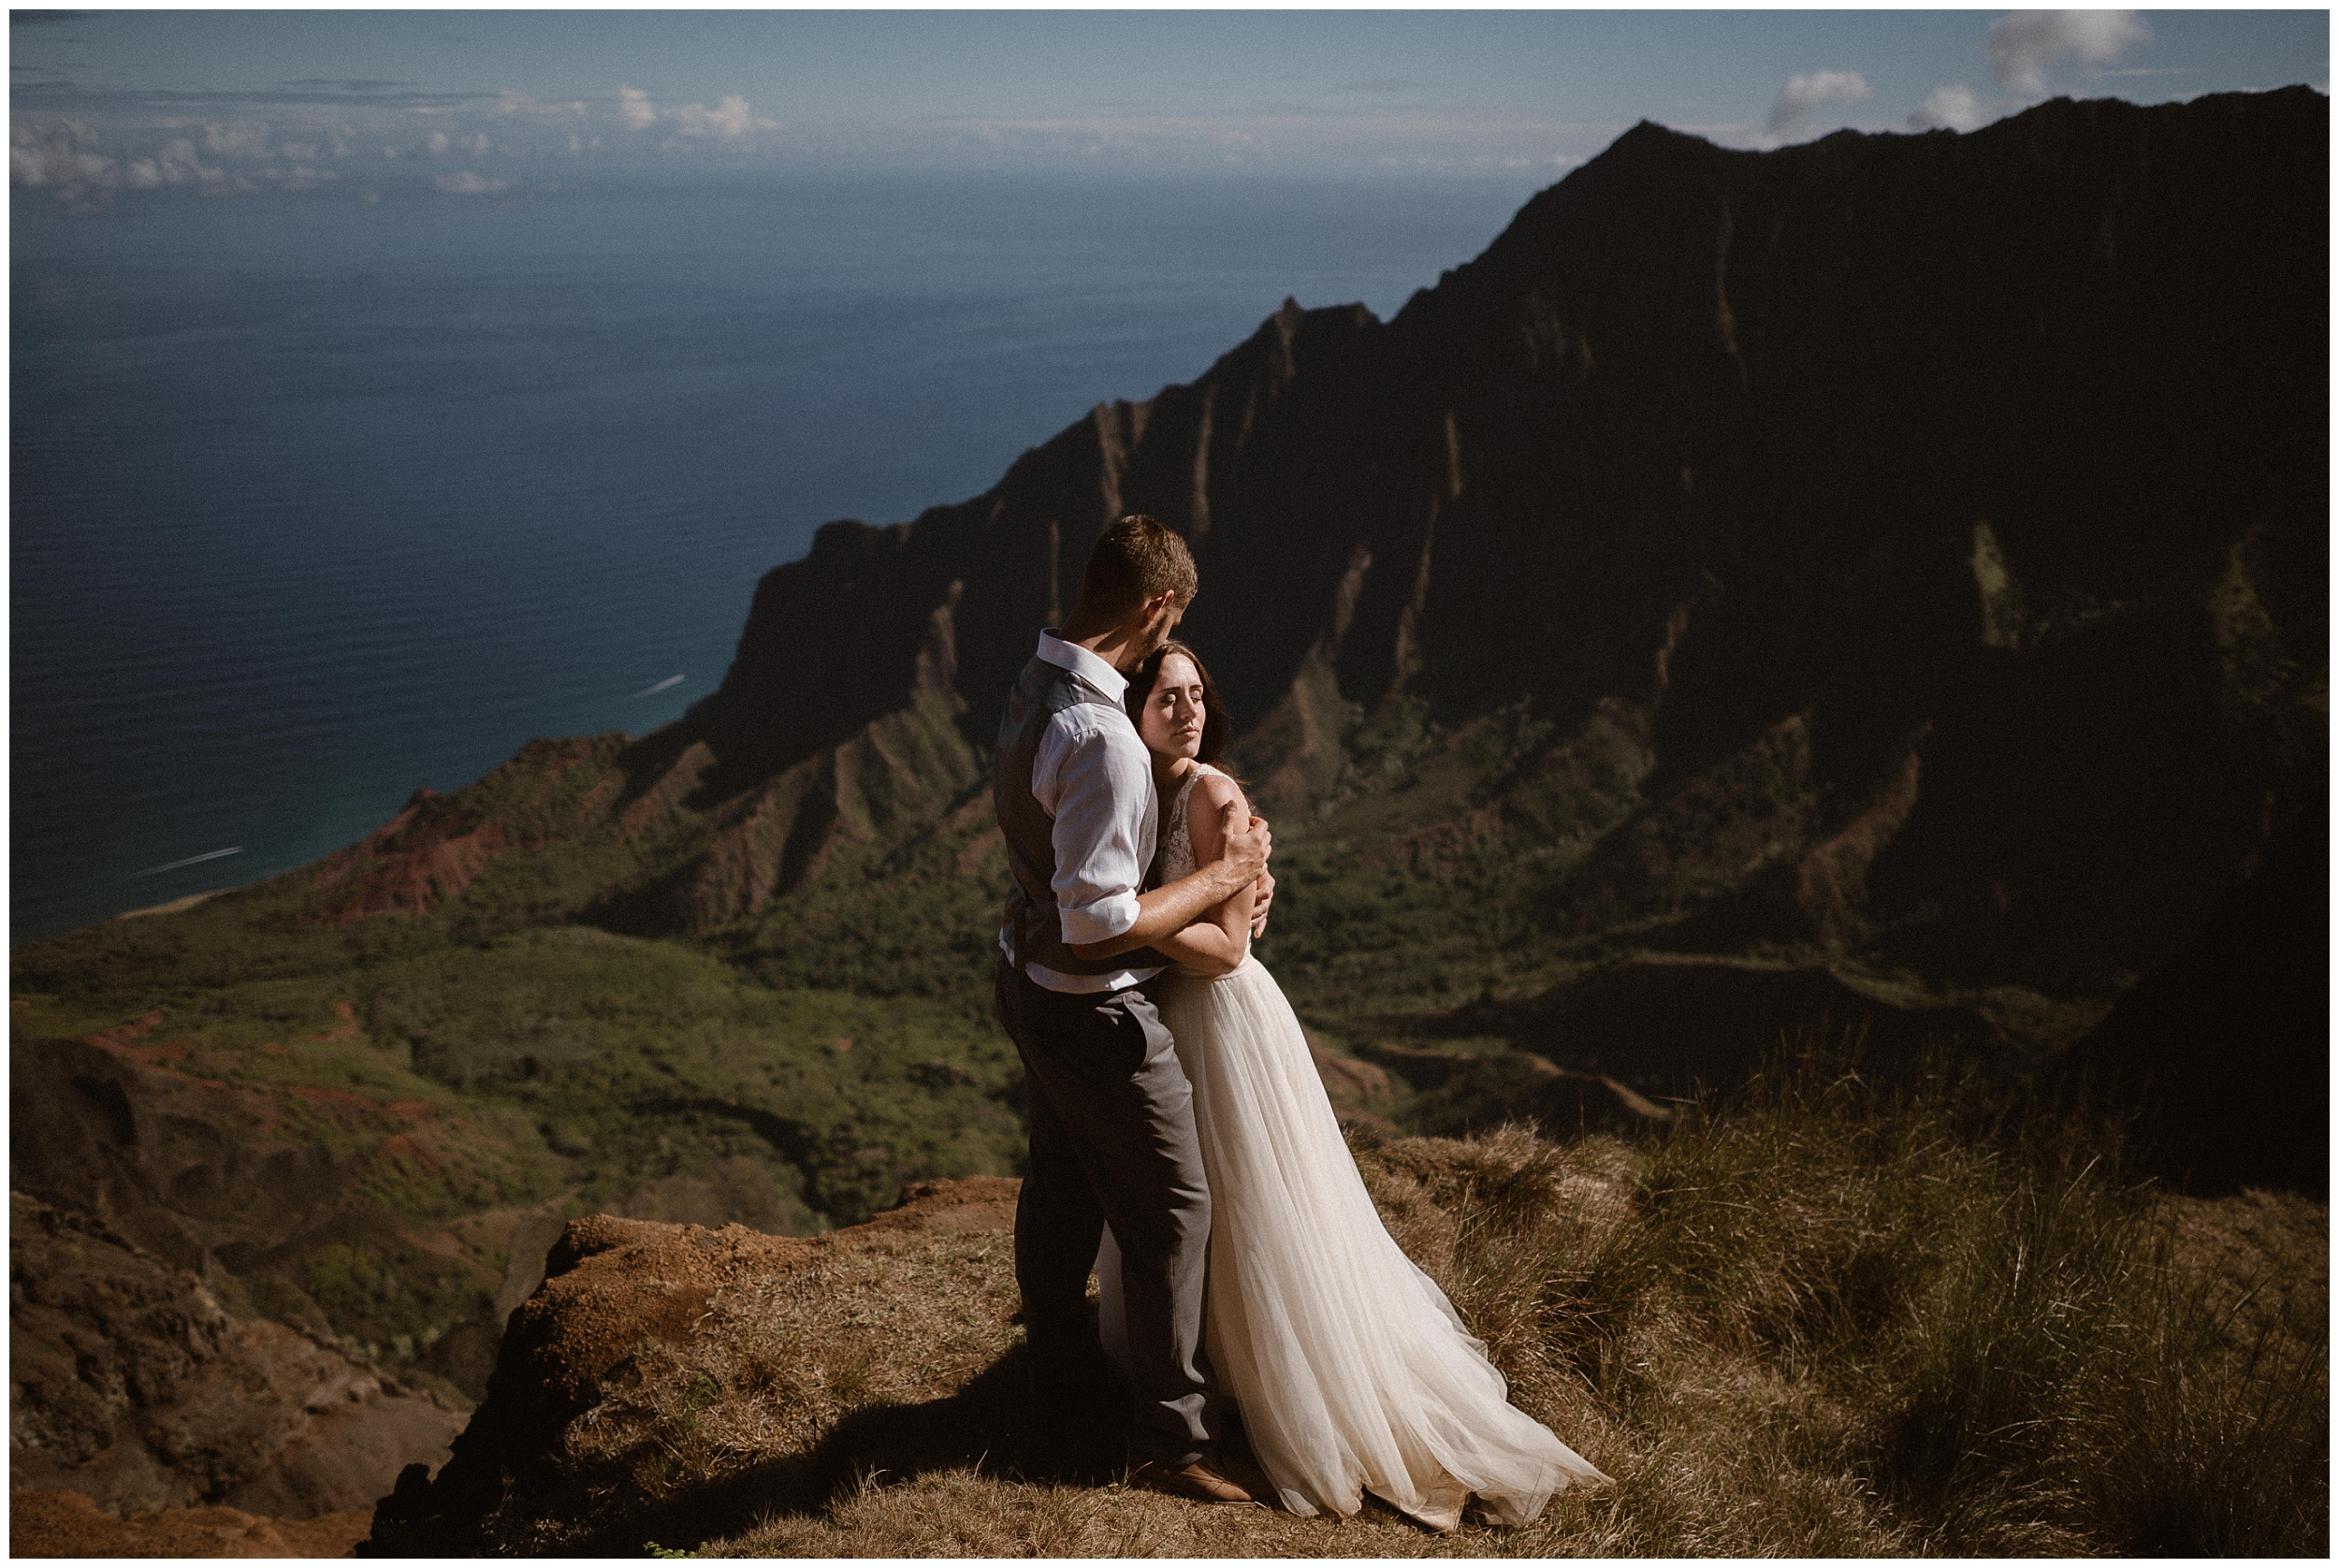 A bride and groom hold each other close while they stand at the top of a cliff overlooking a beautiful Hawaiian beach. These elopement photos were captured by Adventure Instead, a destination elopement photographer.